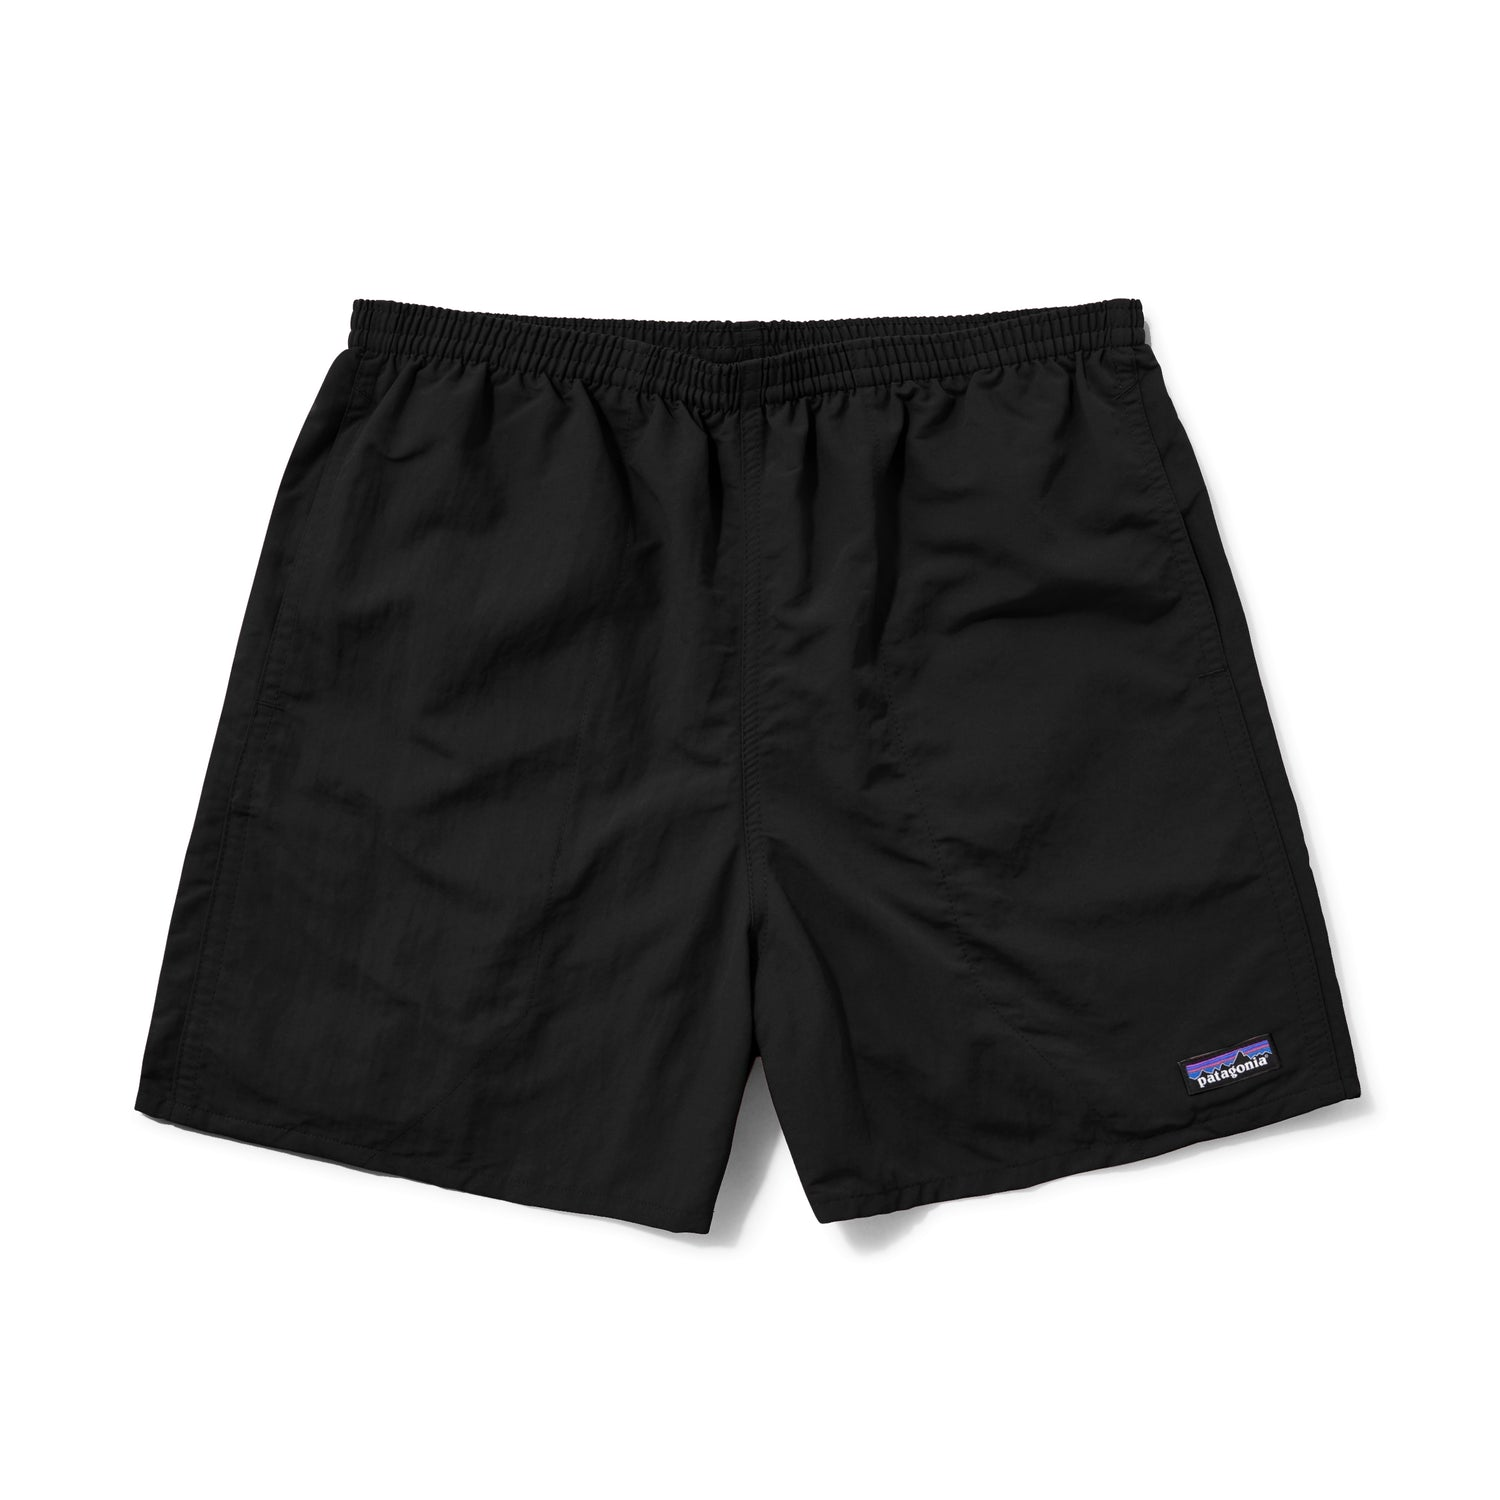 Baggies 5 In. Shorts, Black